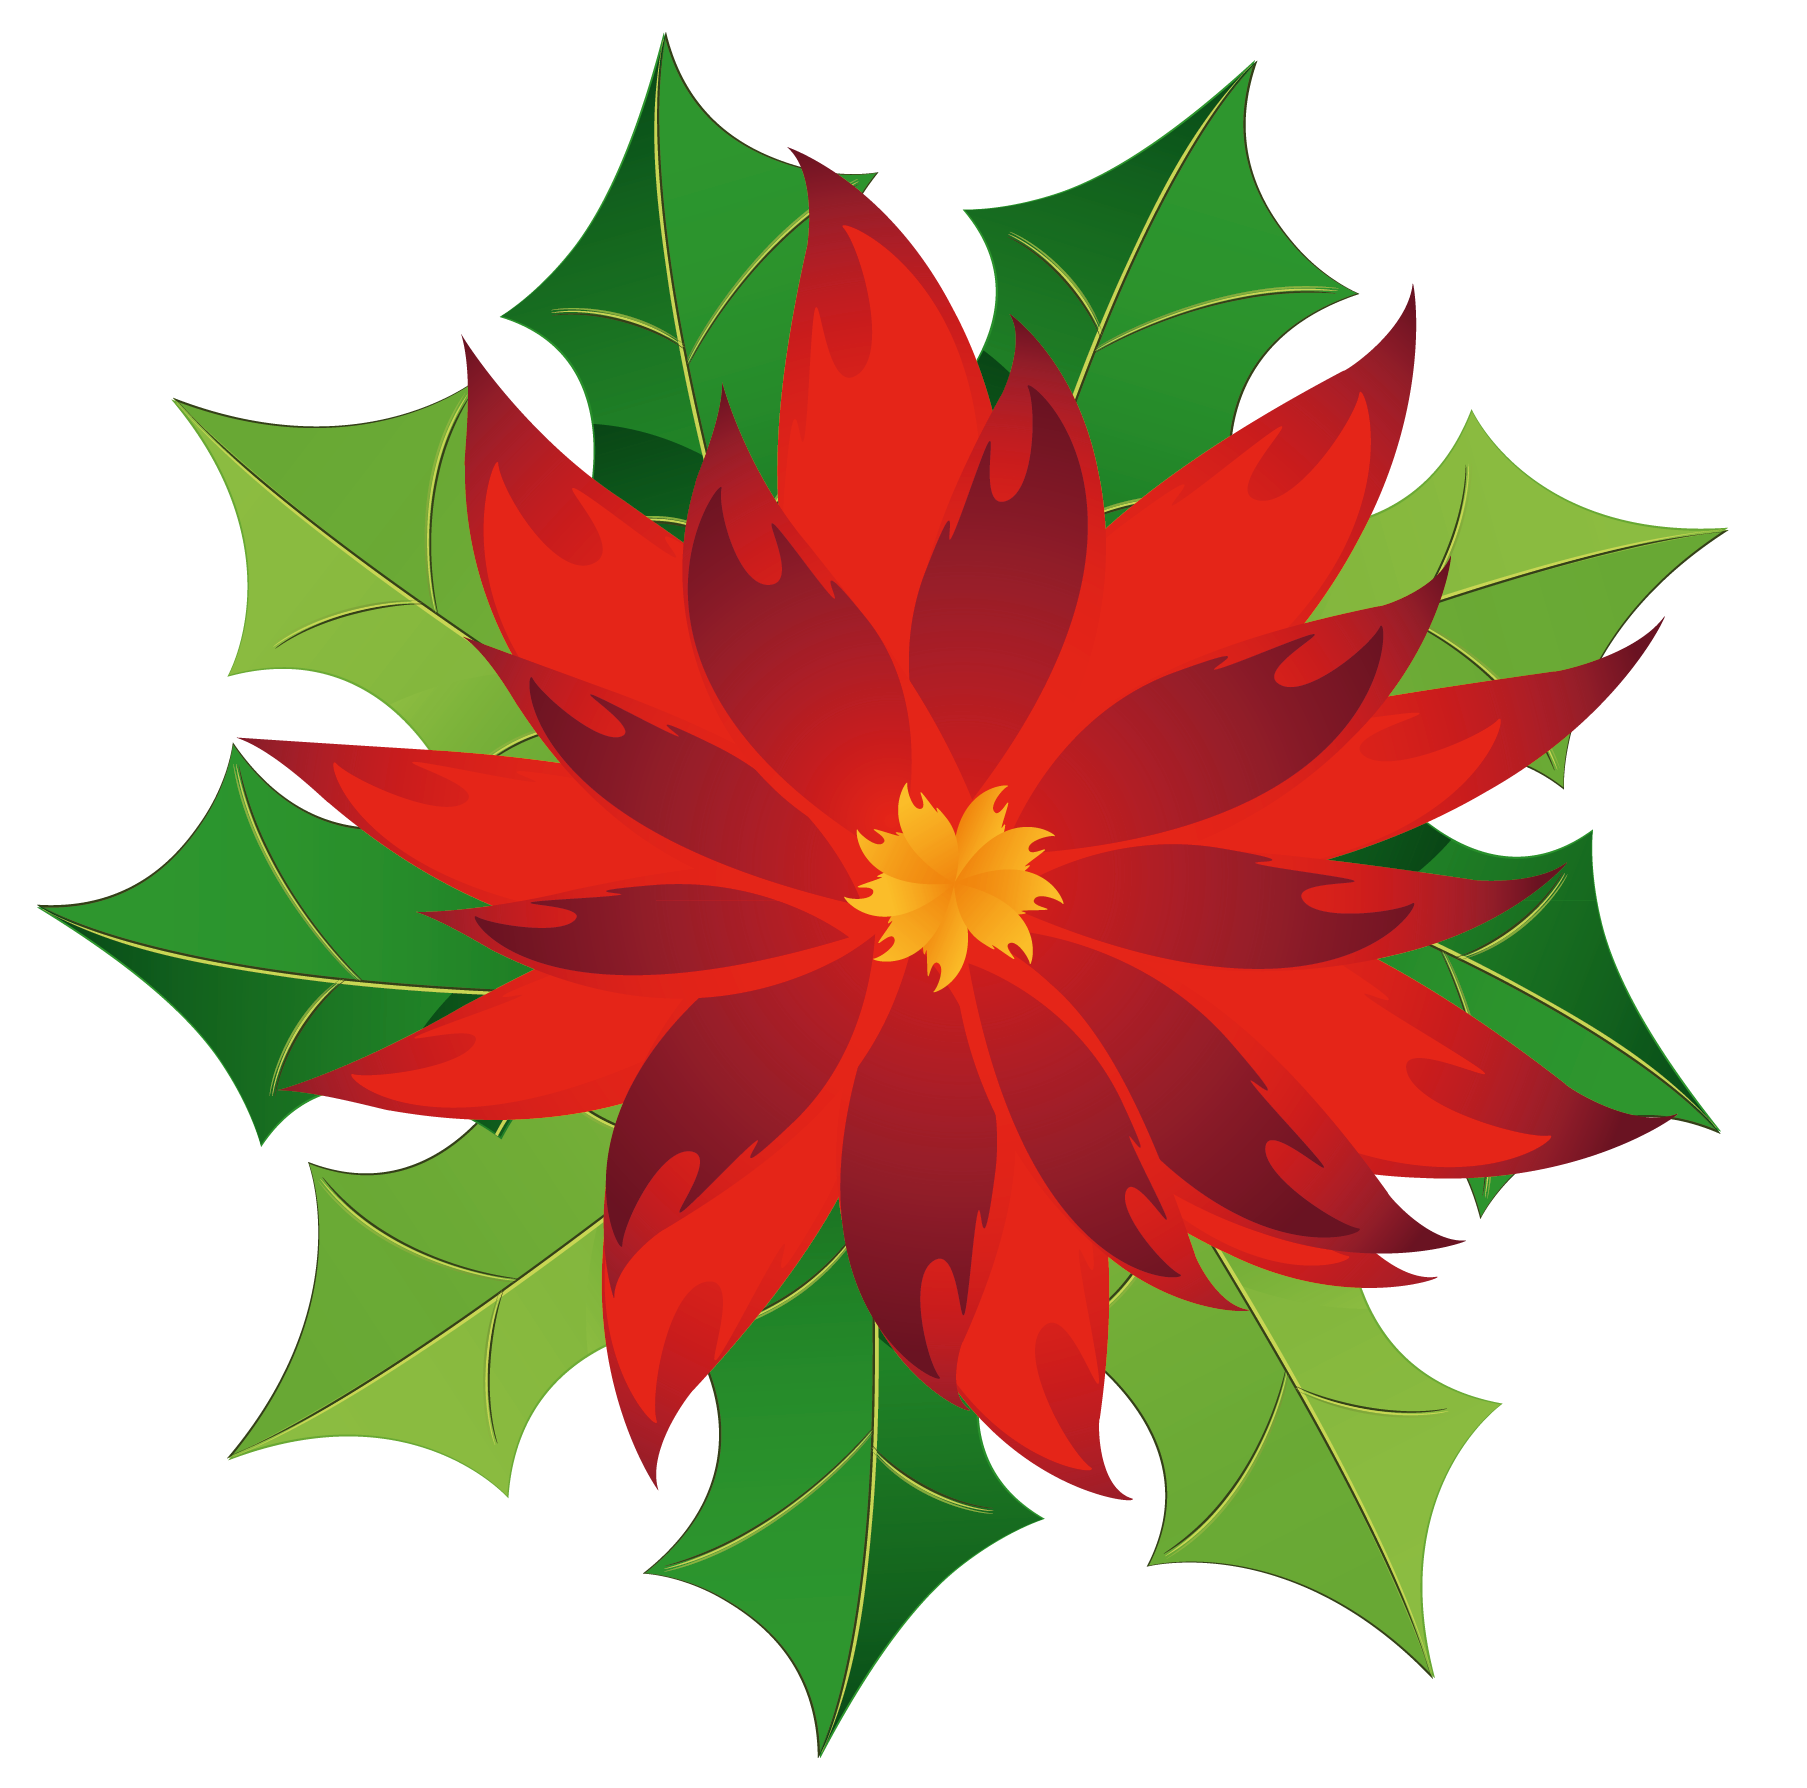 Free poinsettias cliparts download. Poinsetta clip jpg royalty free stock